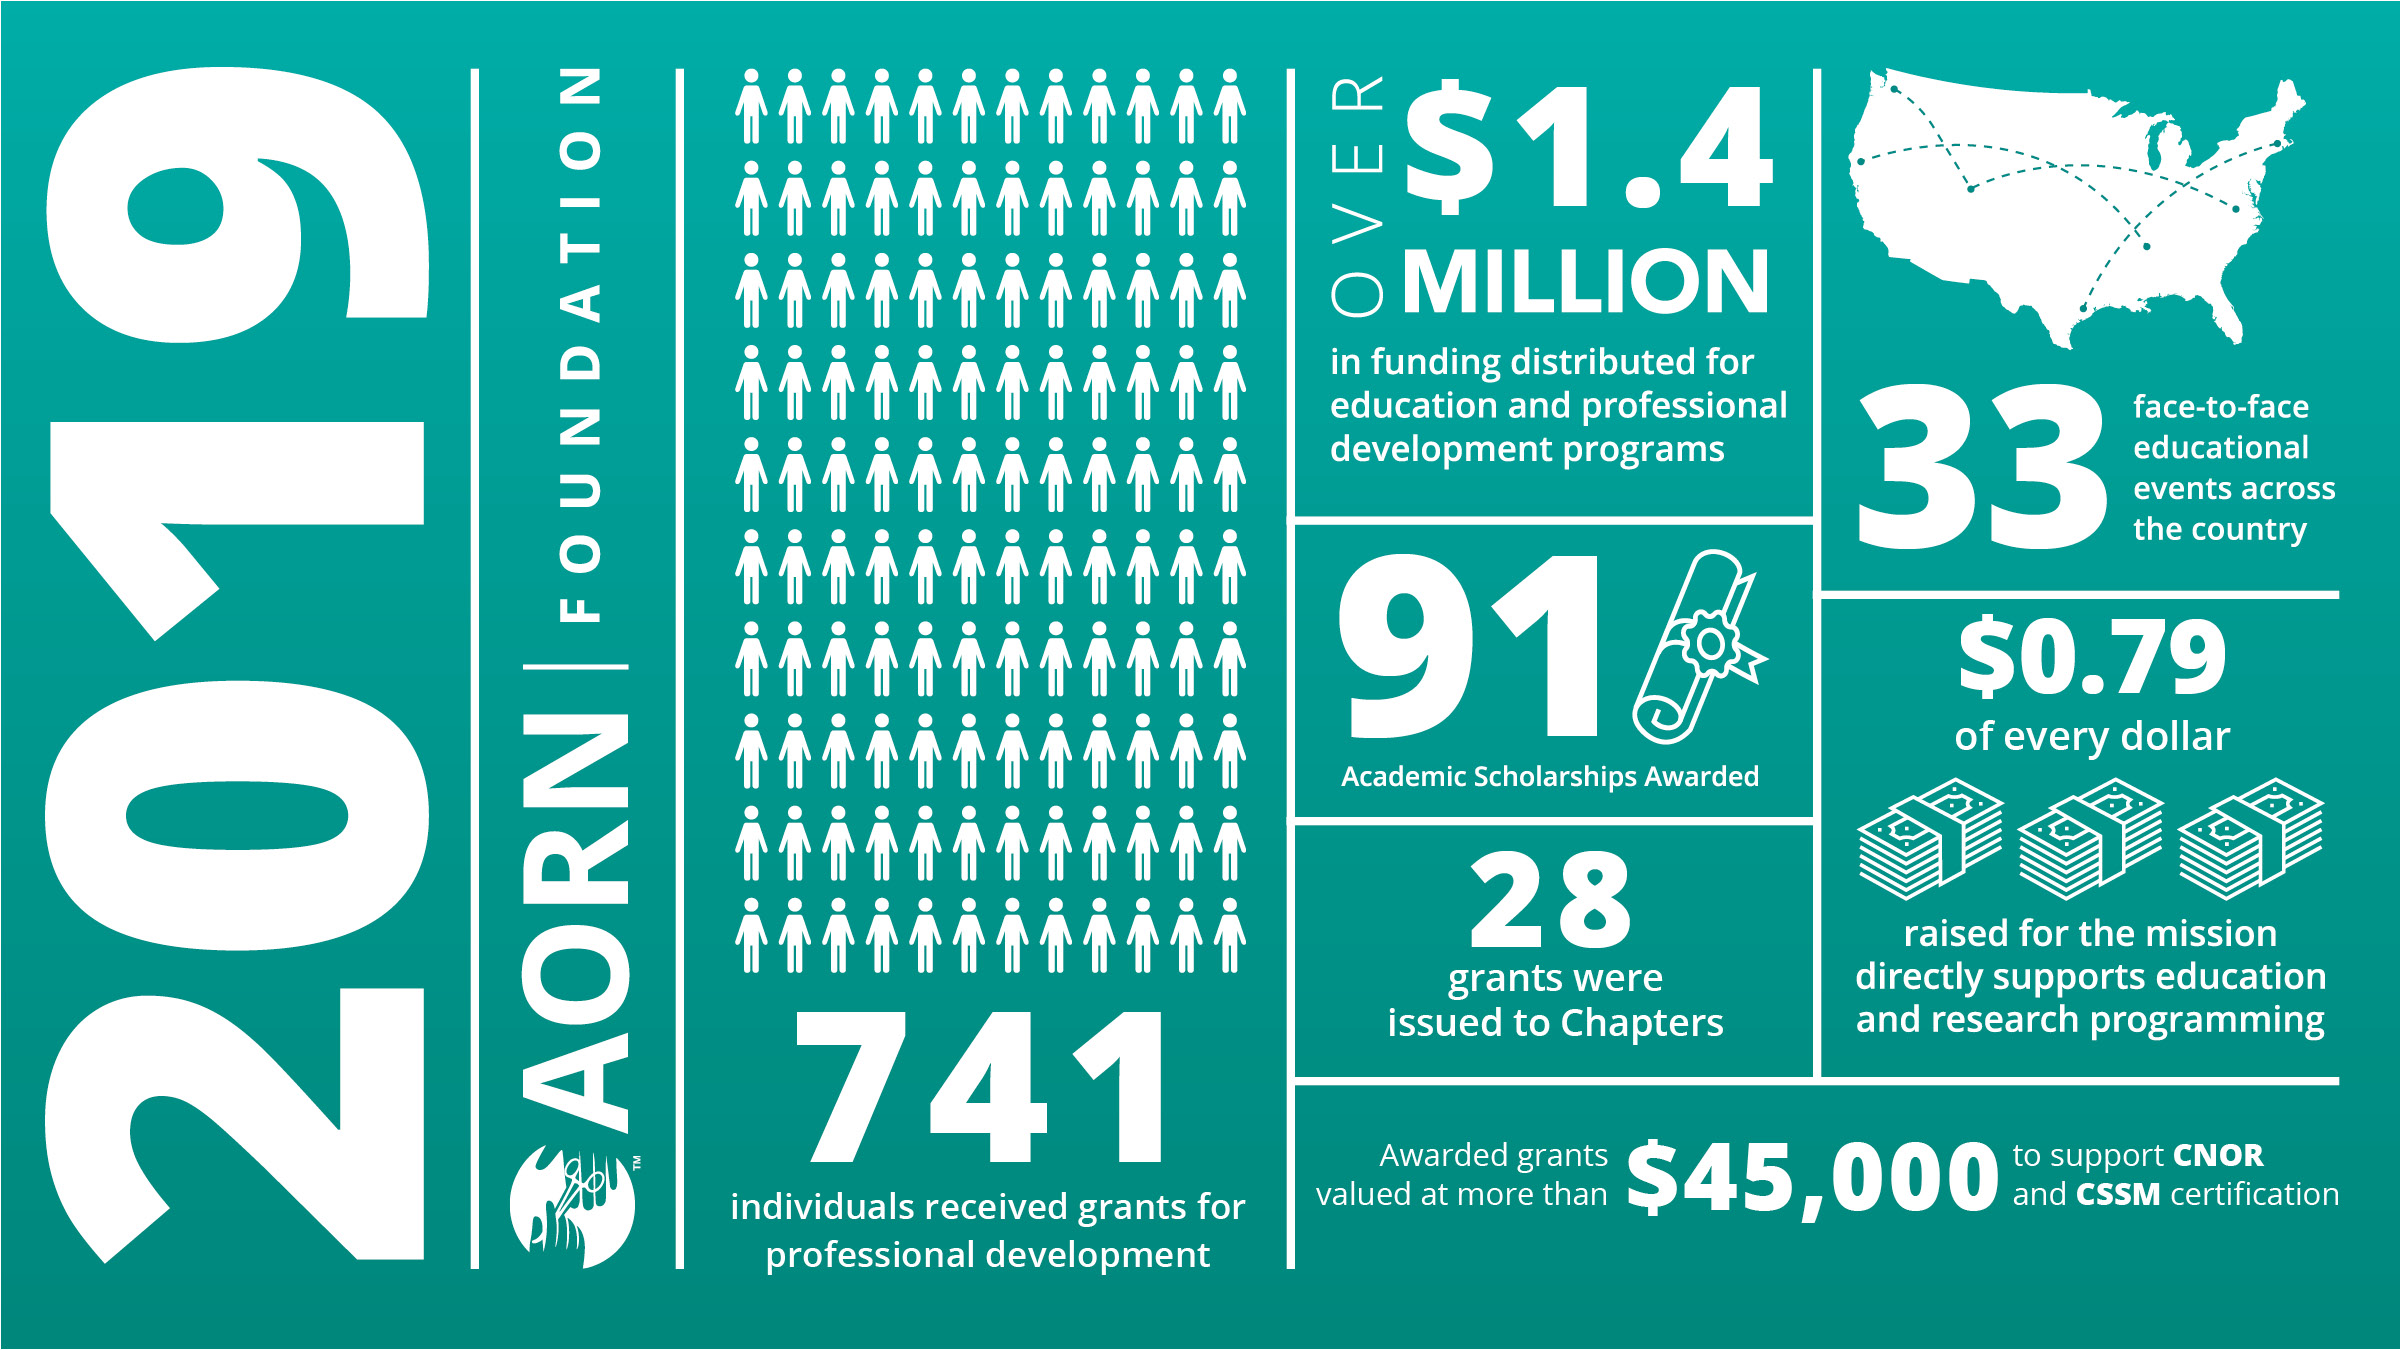 2019 AORN Foundation Infographic